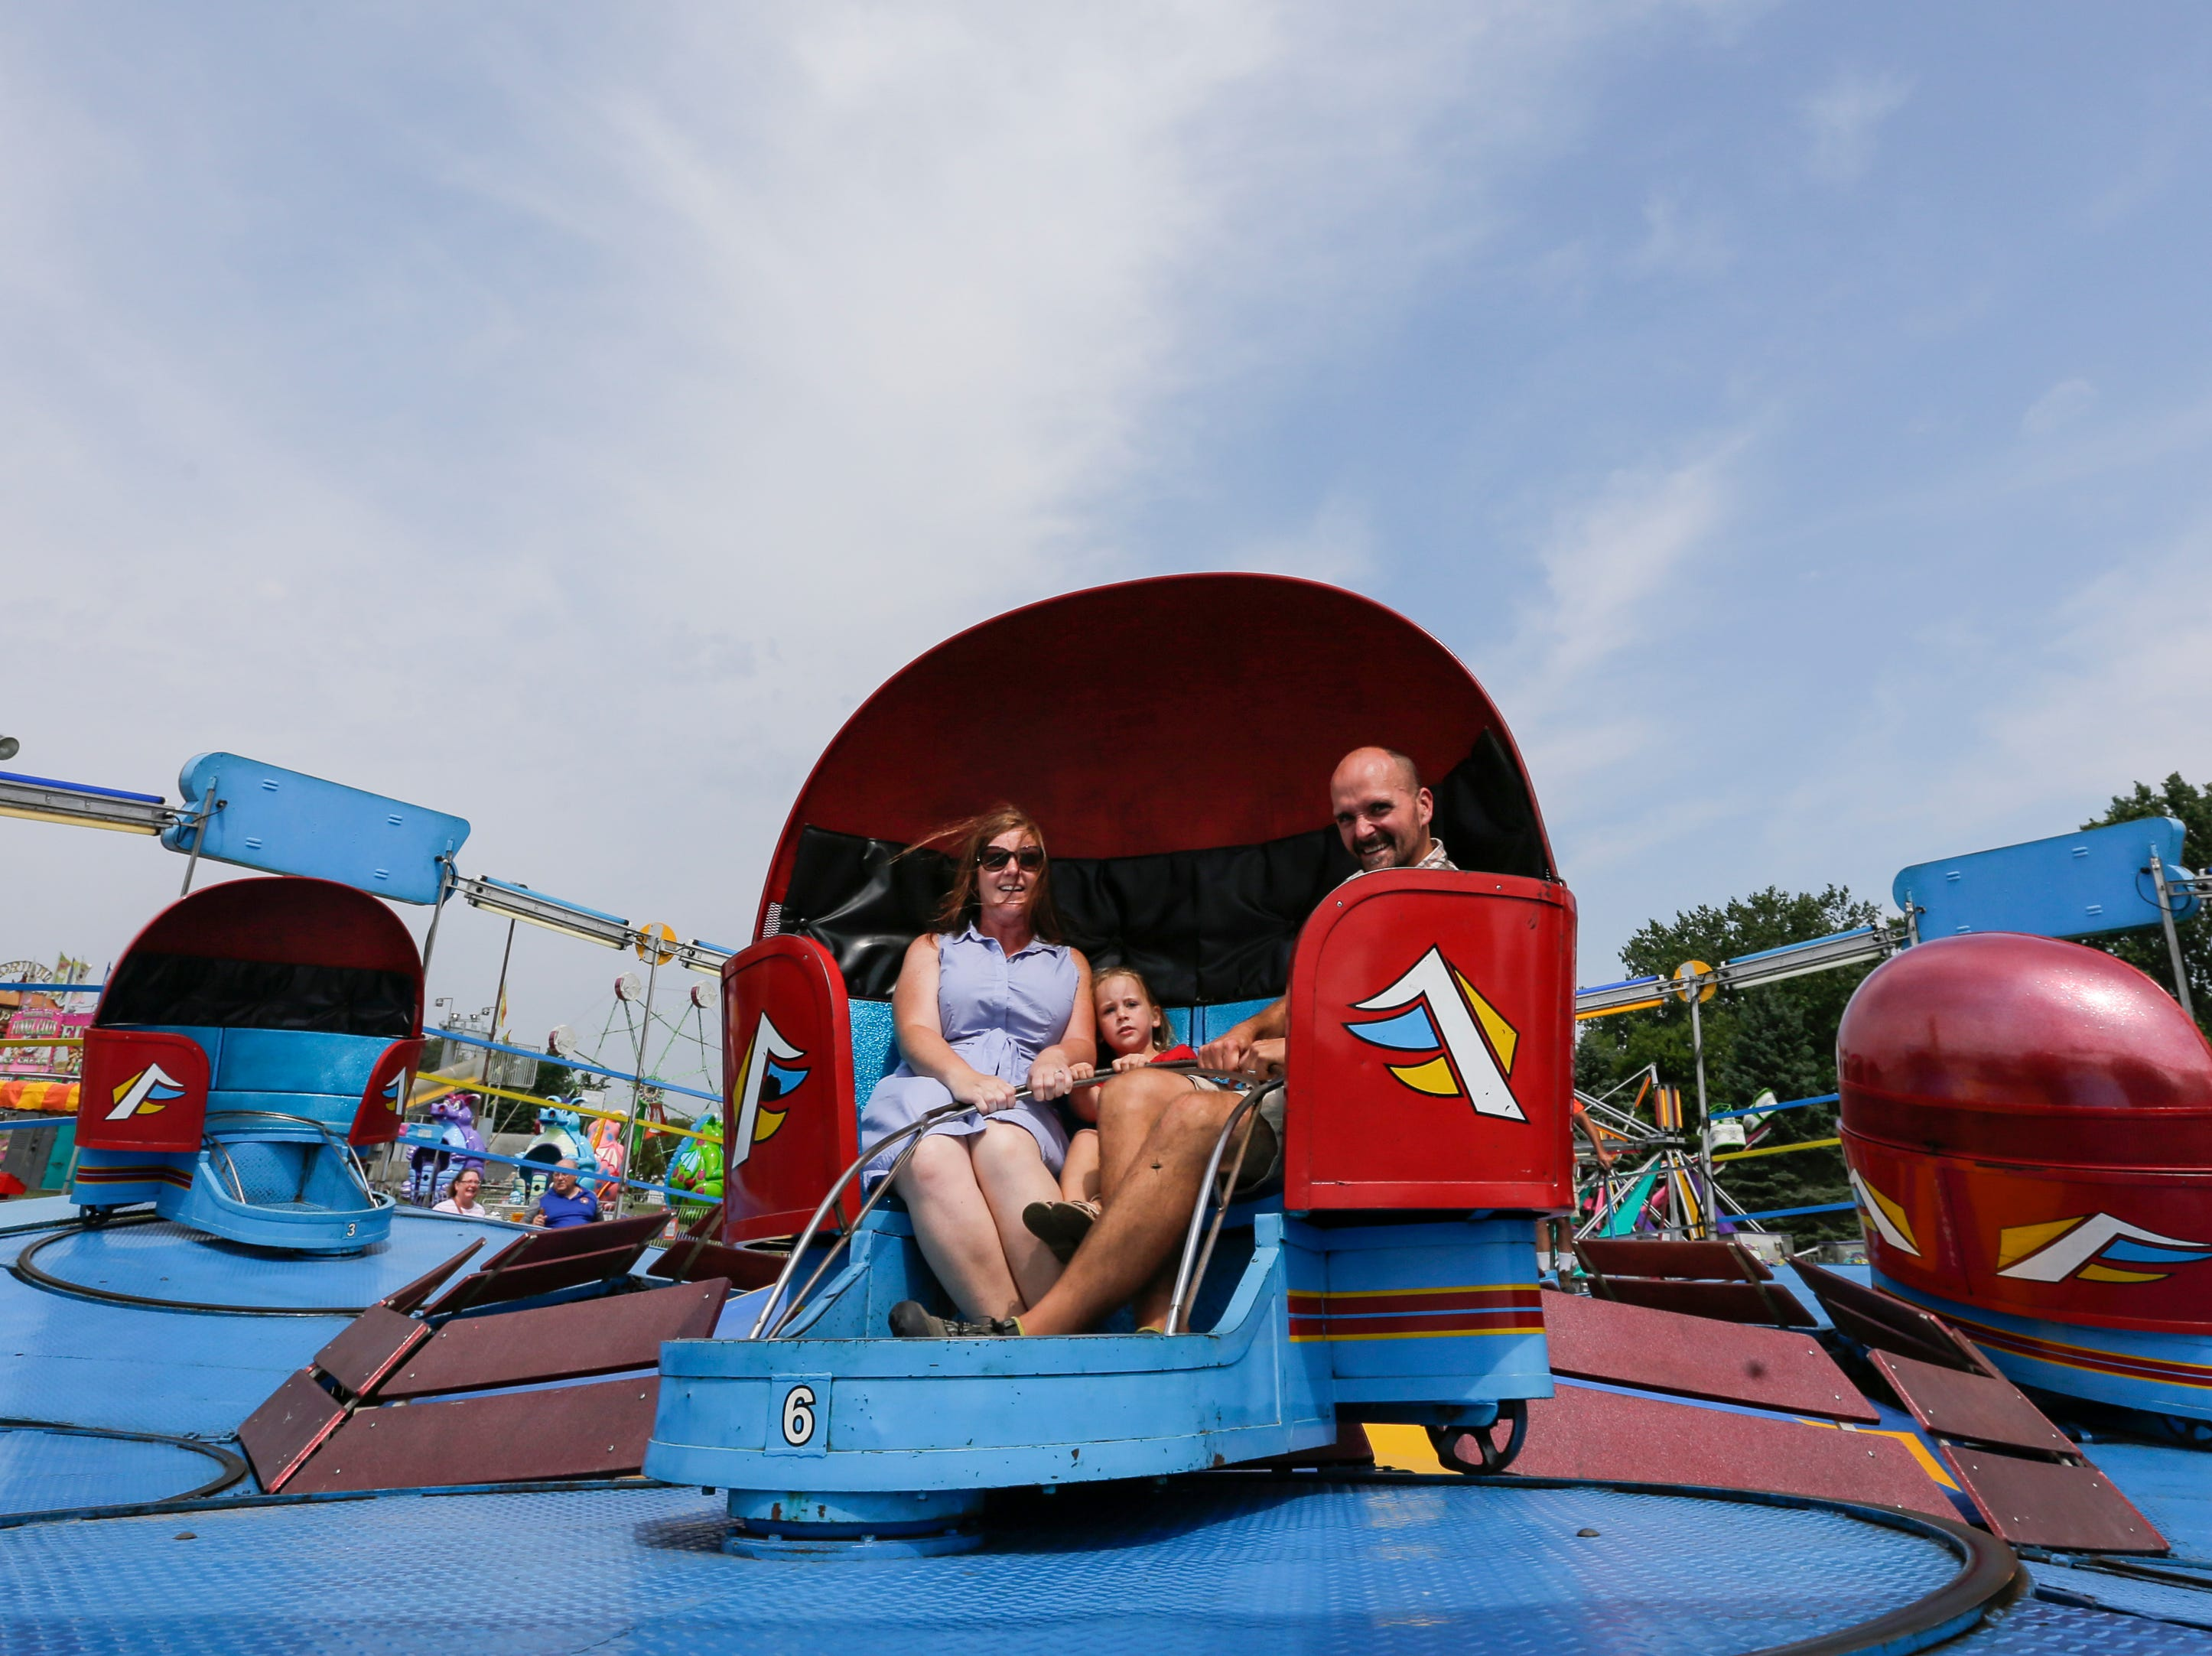 From left, Melissa, Julia, 4, and Andy Jorsch of Oregon ride the tilt-a-whirl during Mishicot Riverfest Saturday, August 4, 2018, in Mishicot, Wis. Josh Clark/USA TODAY NETWORK-Wisconsin